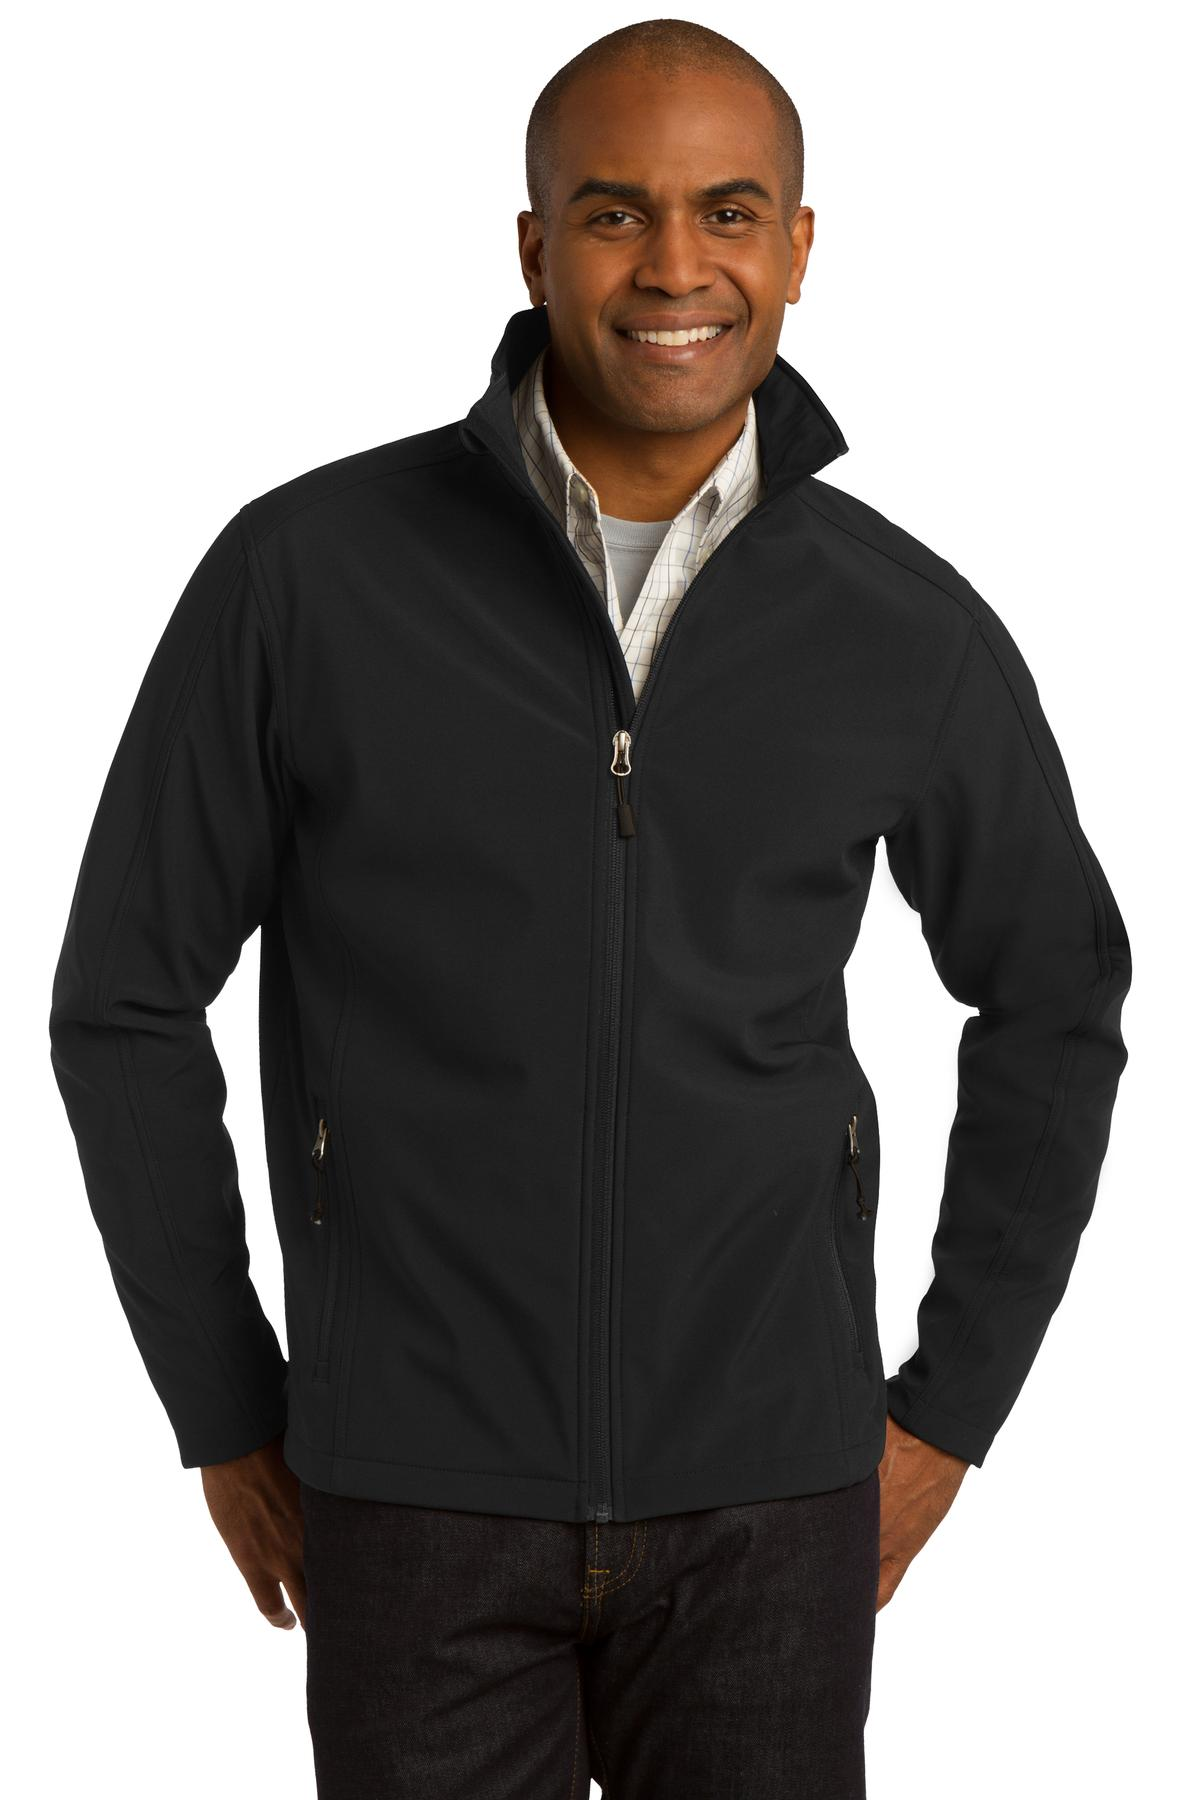 LEXUS Core Soft Shell Jacket.-Port Authority